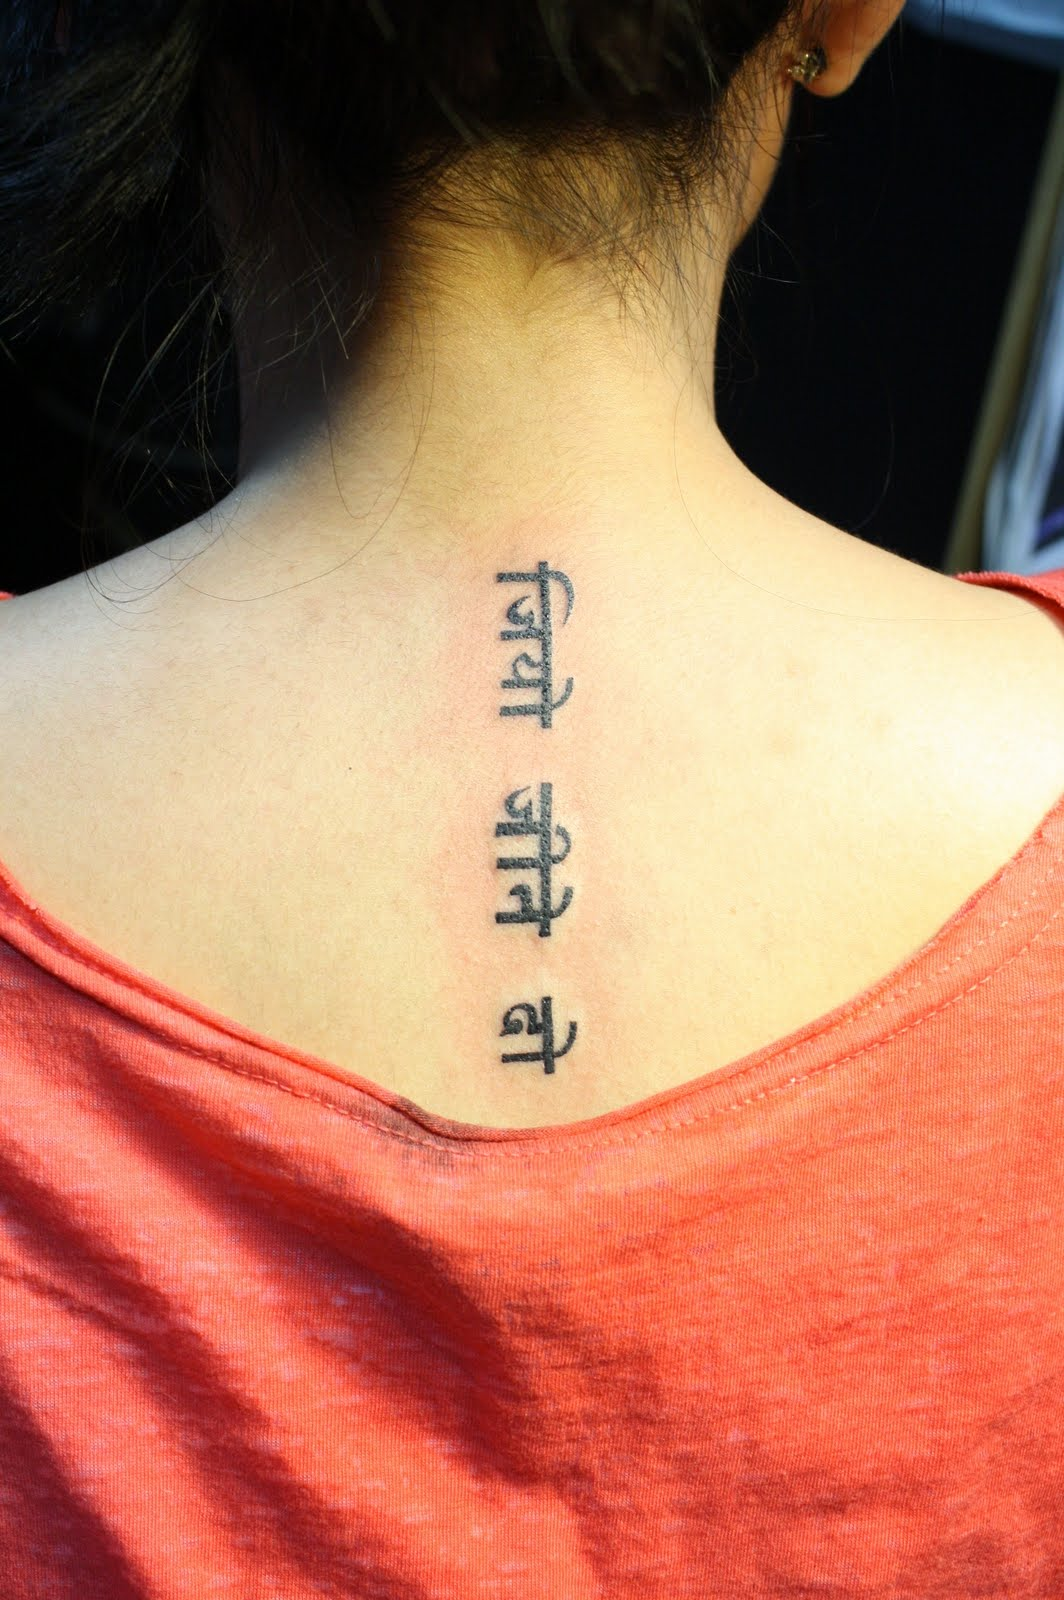 Sanskrit tattoos and meaning